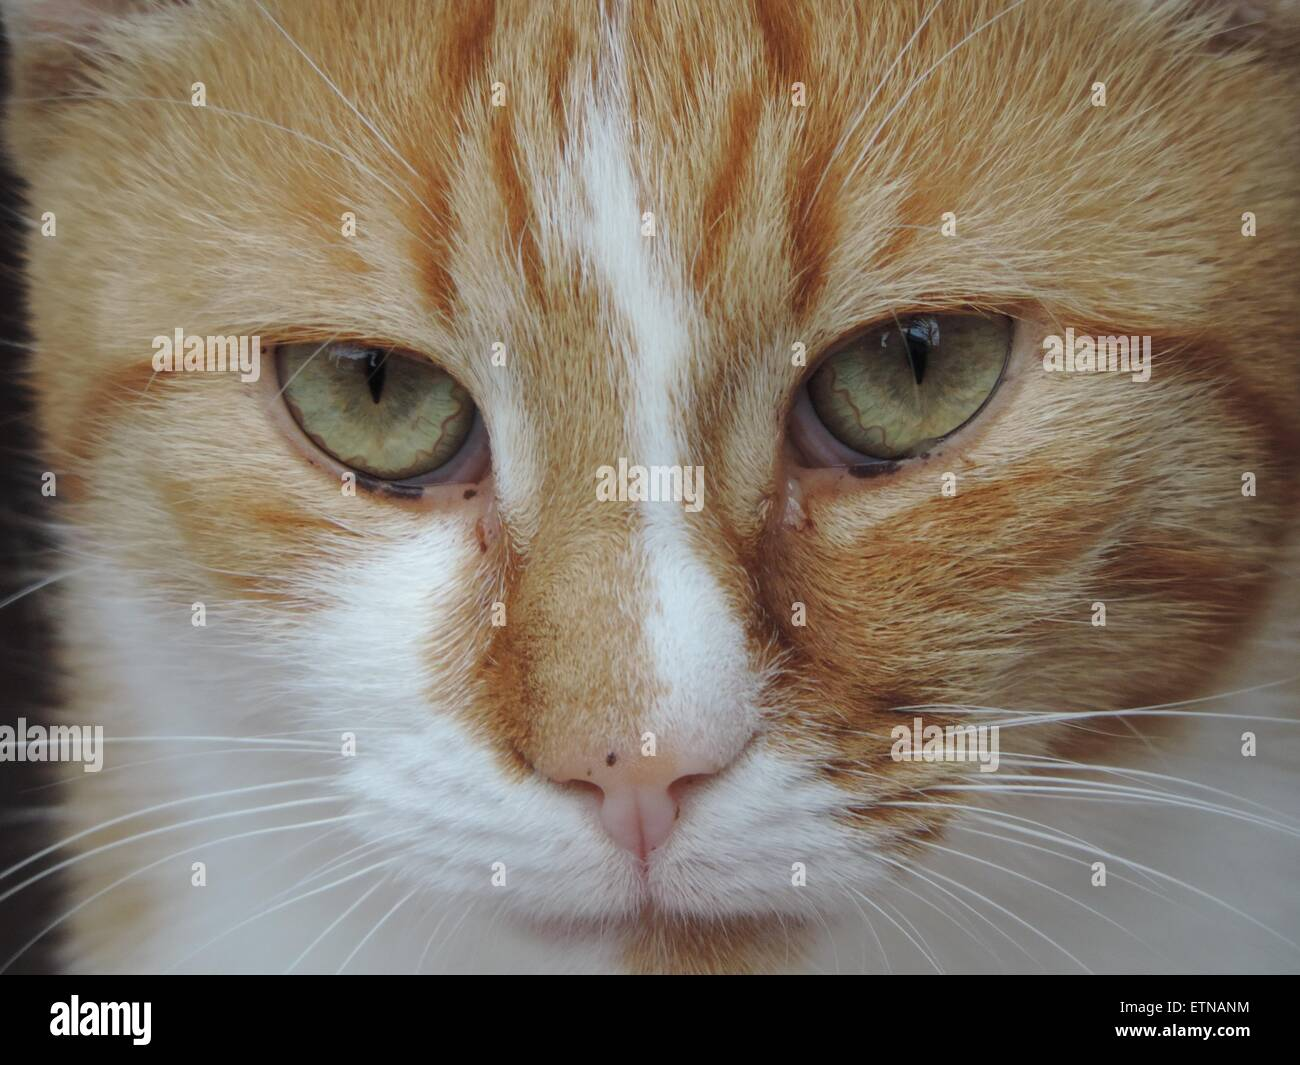 Ginger and white cats head - Stock Image